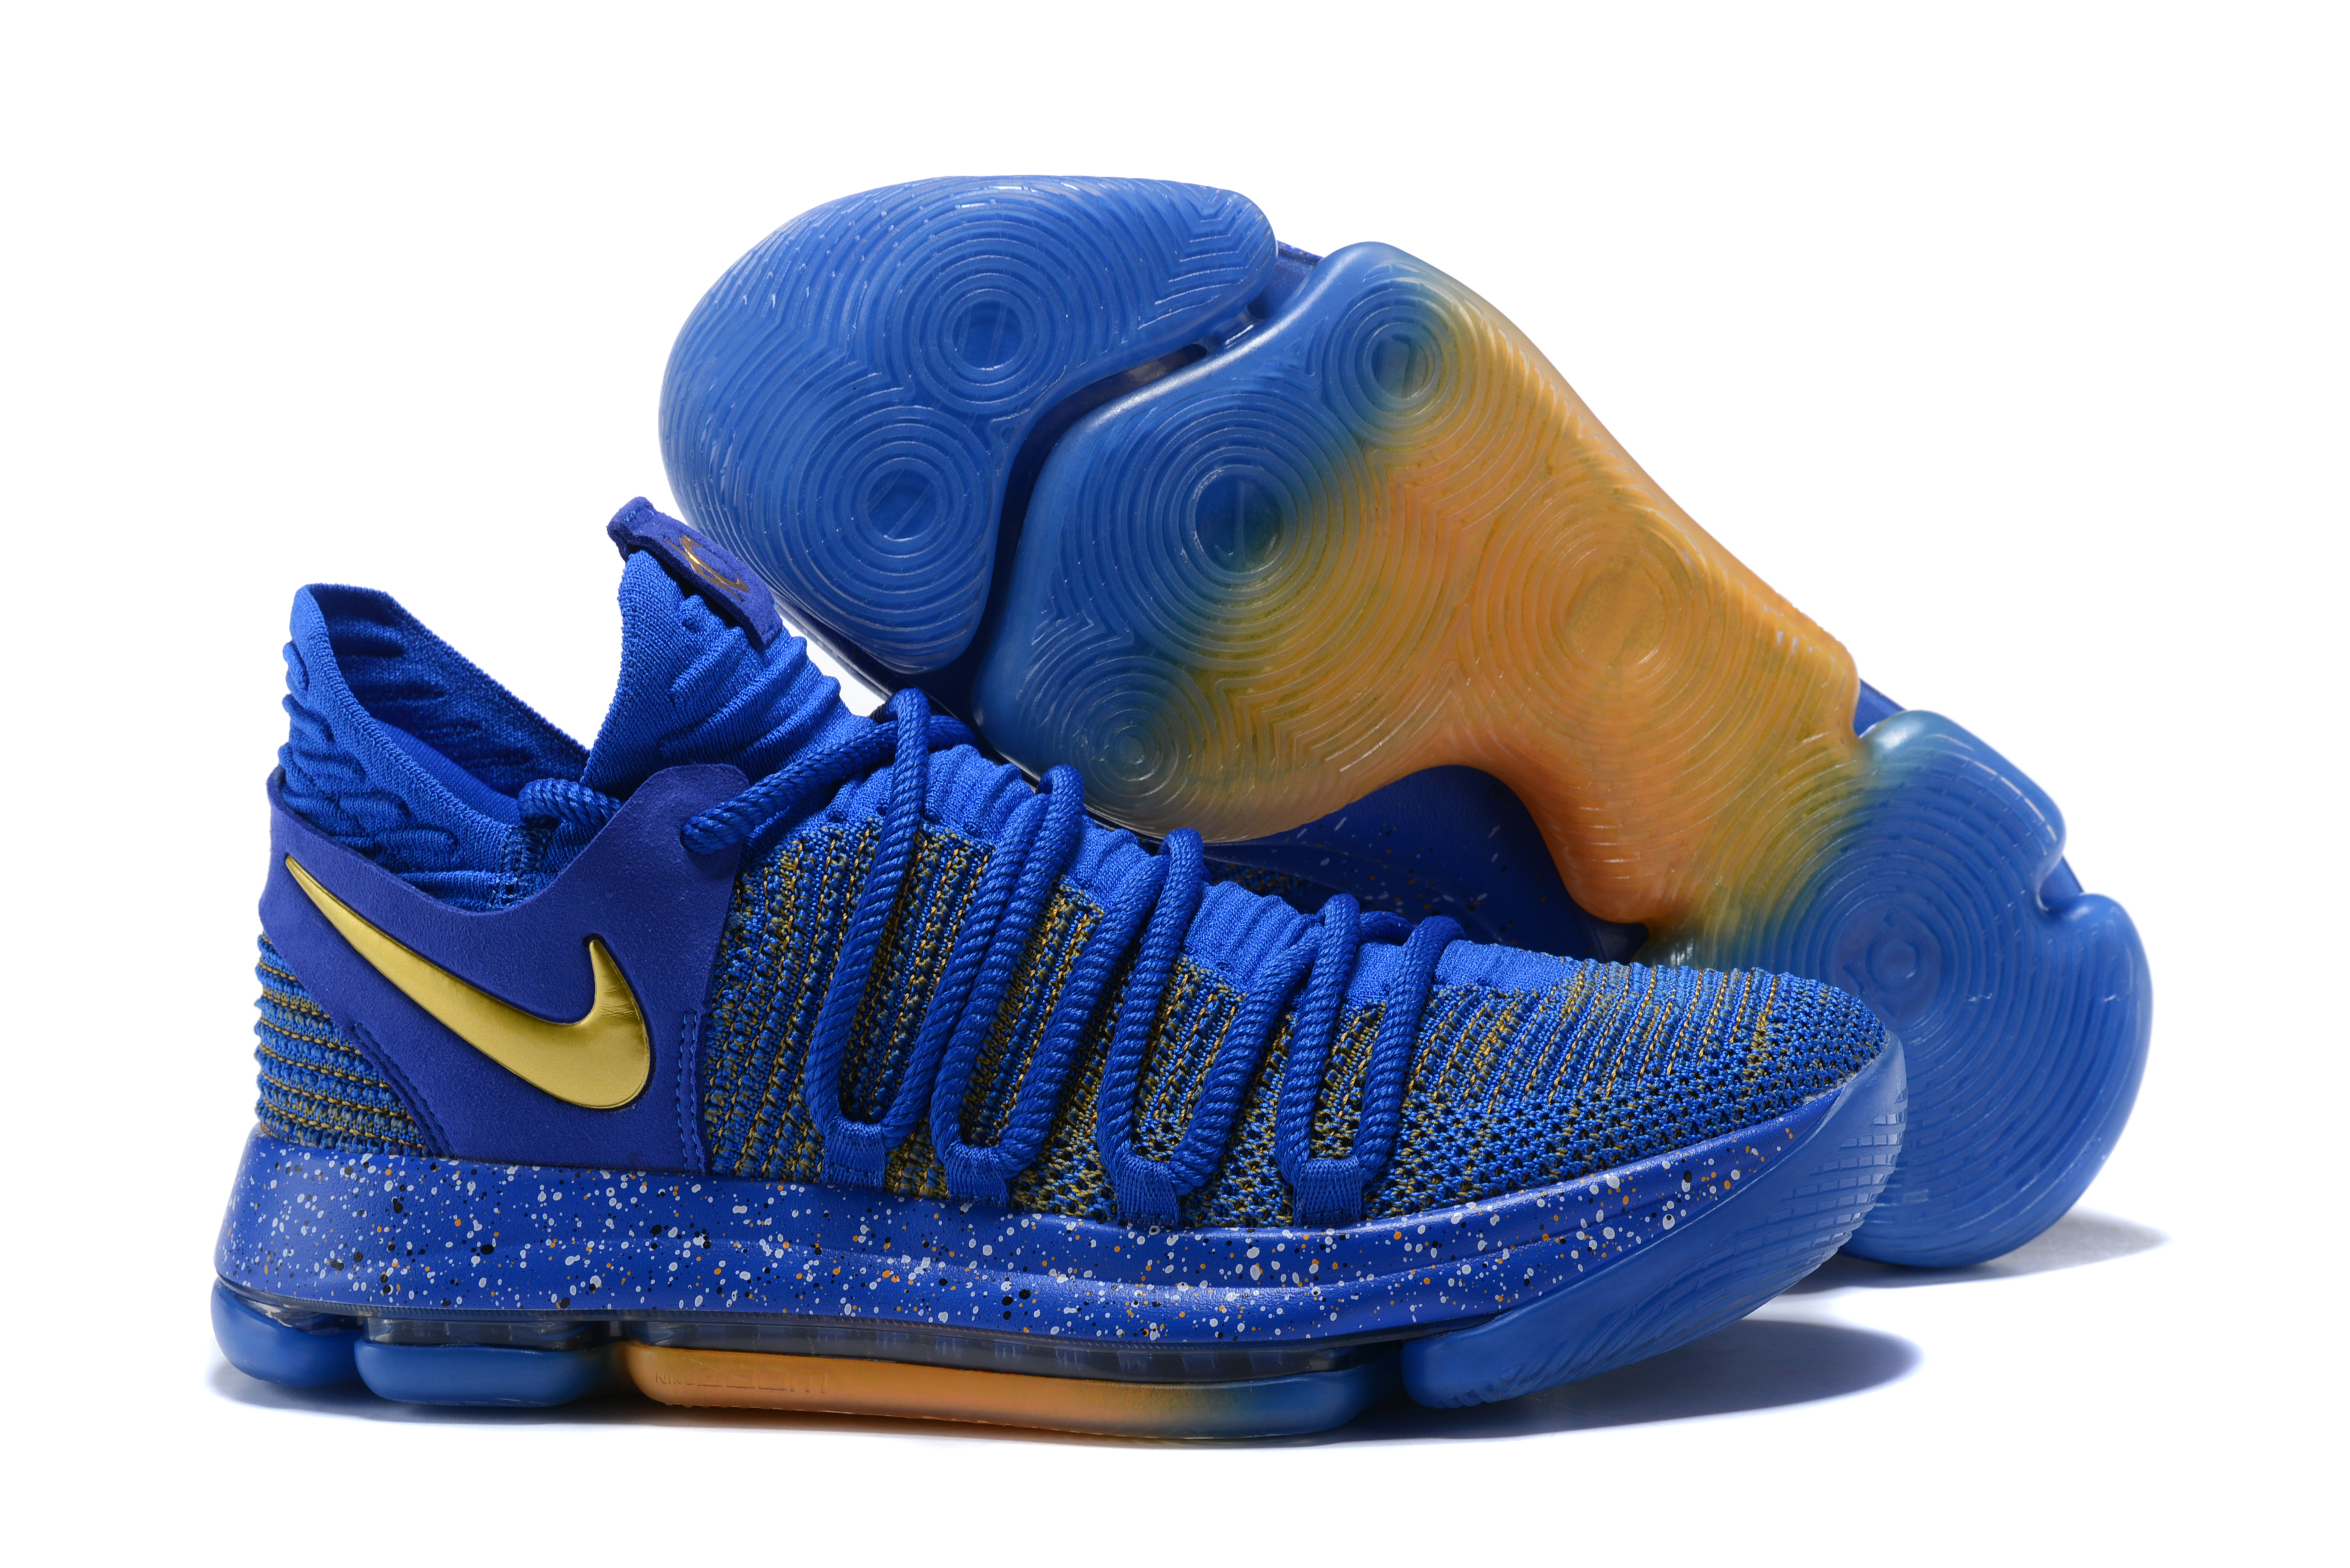 2018 Nike KD 10 Finals Shoes For Sale